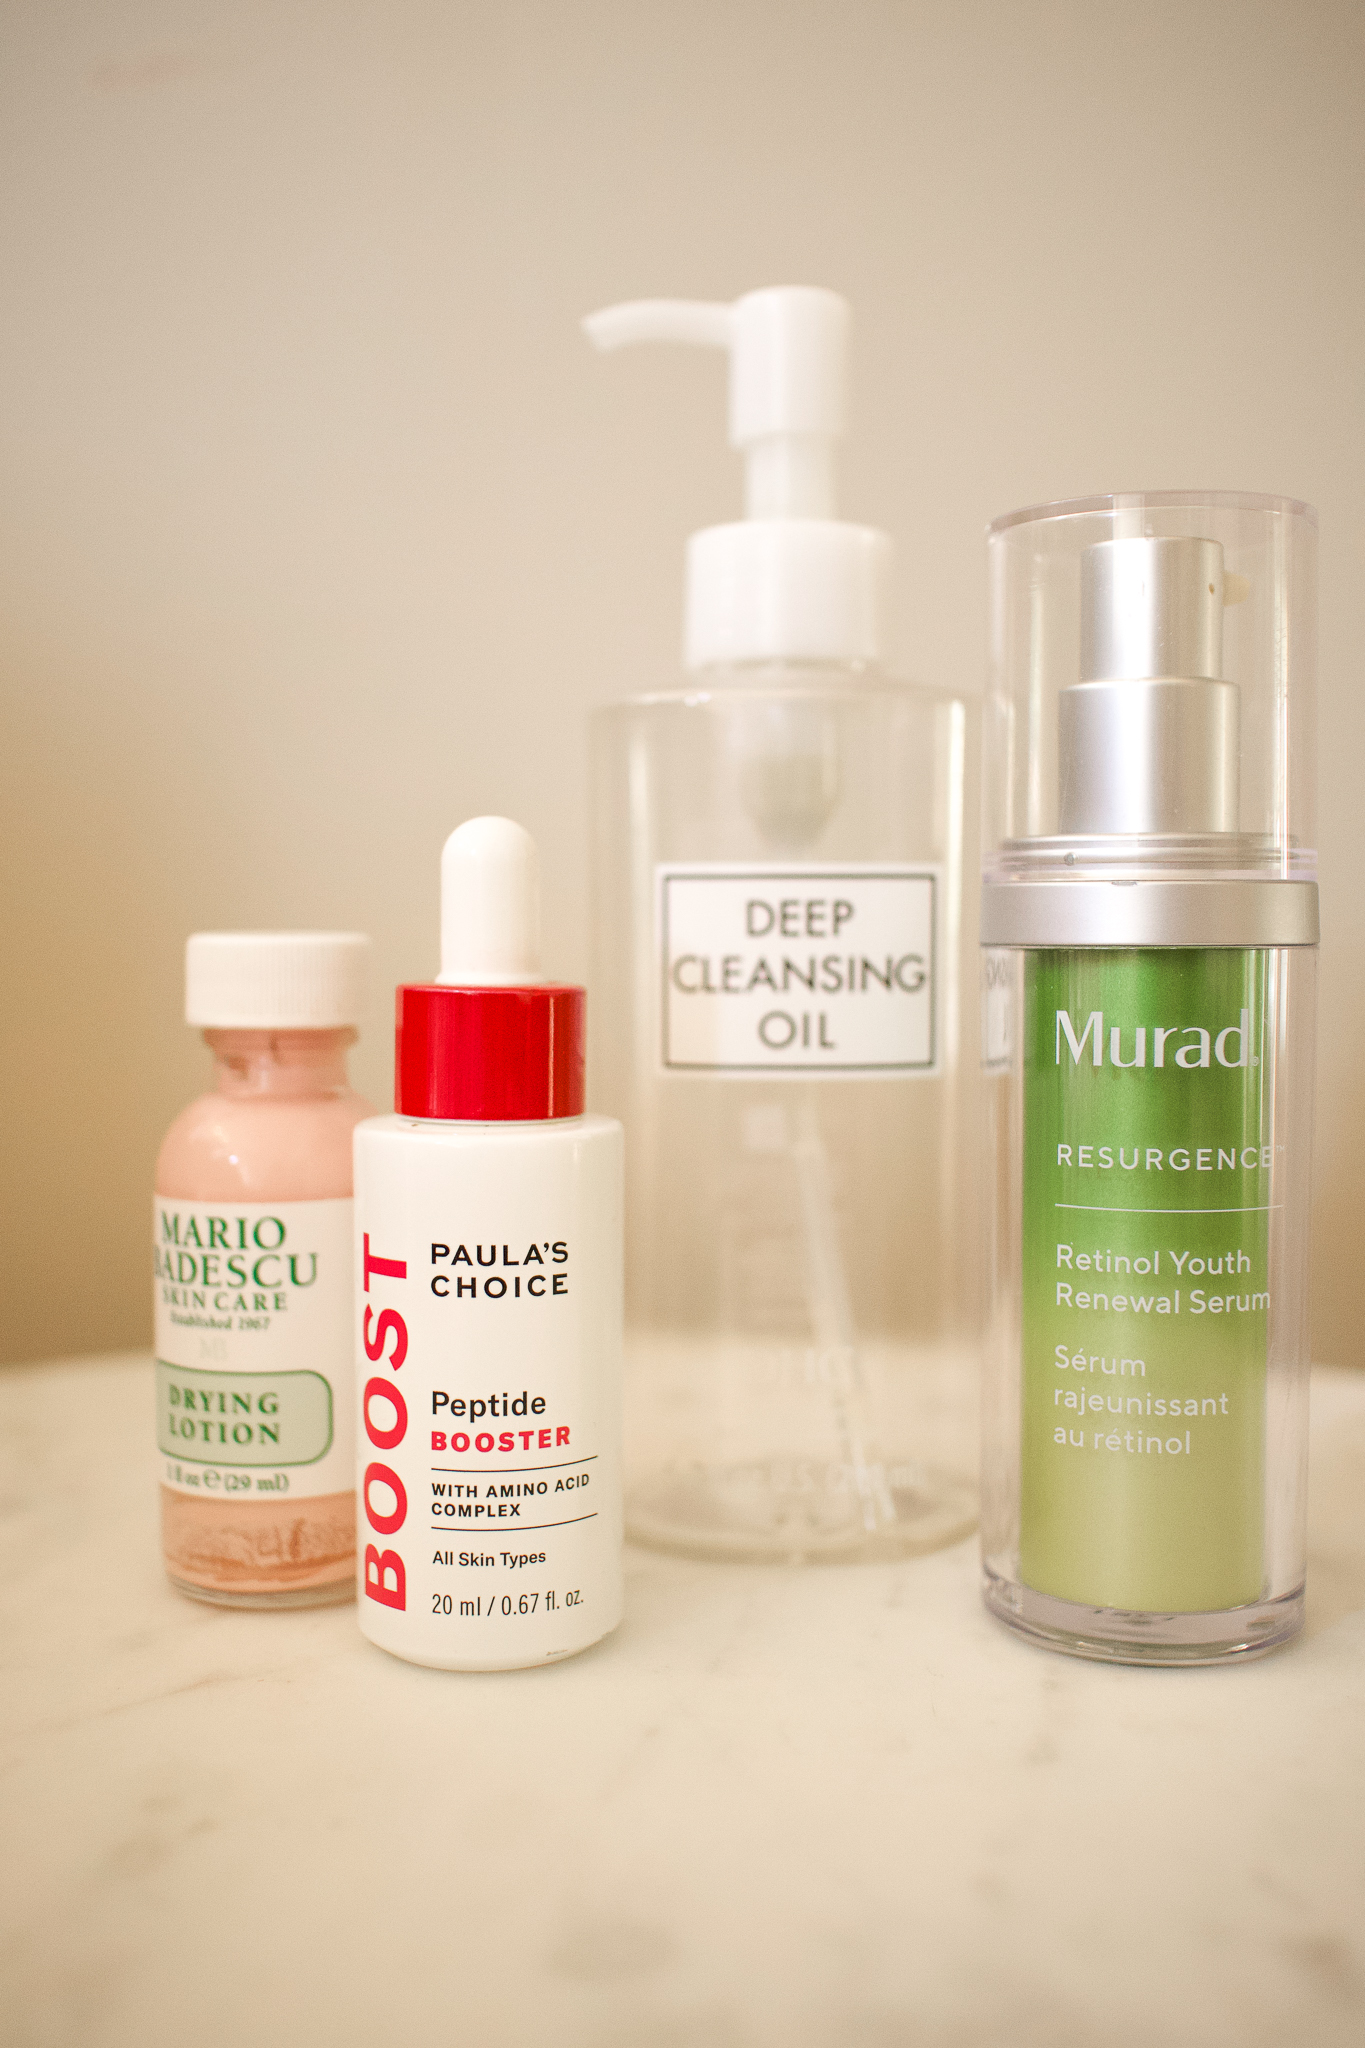 Empties by popular Seattle beauty blog, Whit Wanders: image of Paula's Choice peptide booster, Deep cleansing oil, Murad Resurgence, and Mario Badescu drying lotion.